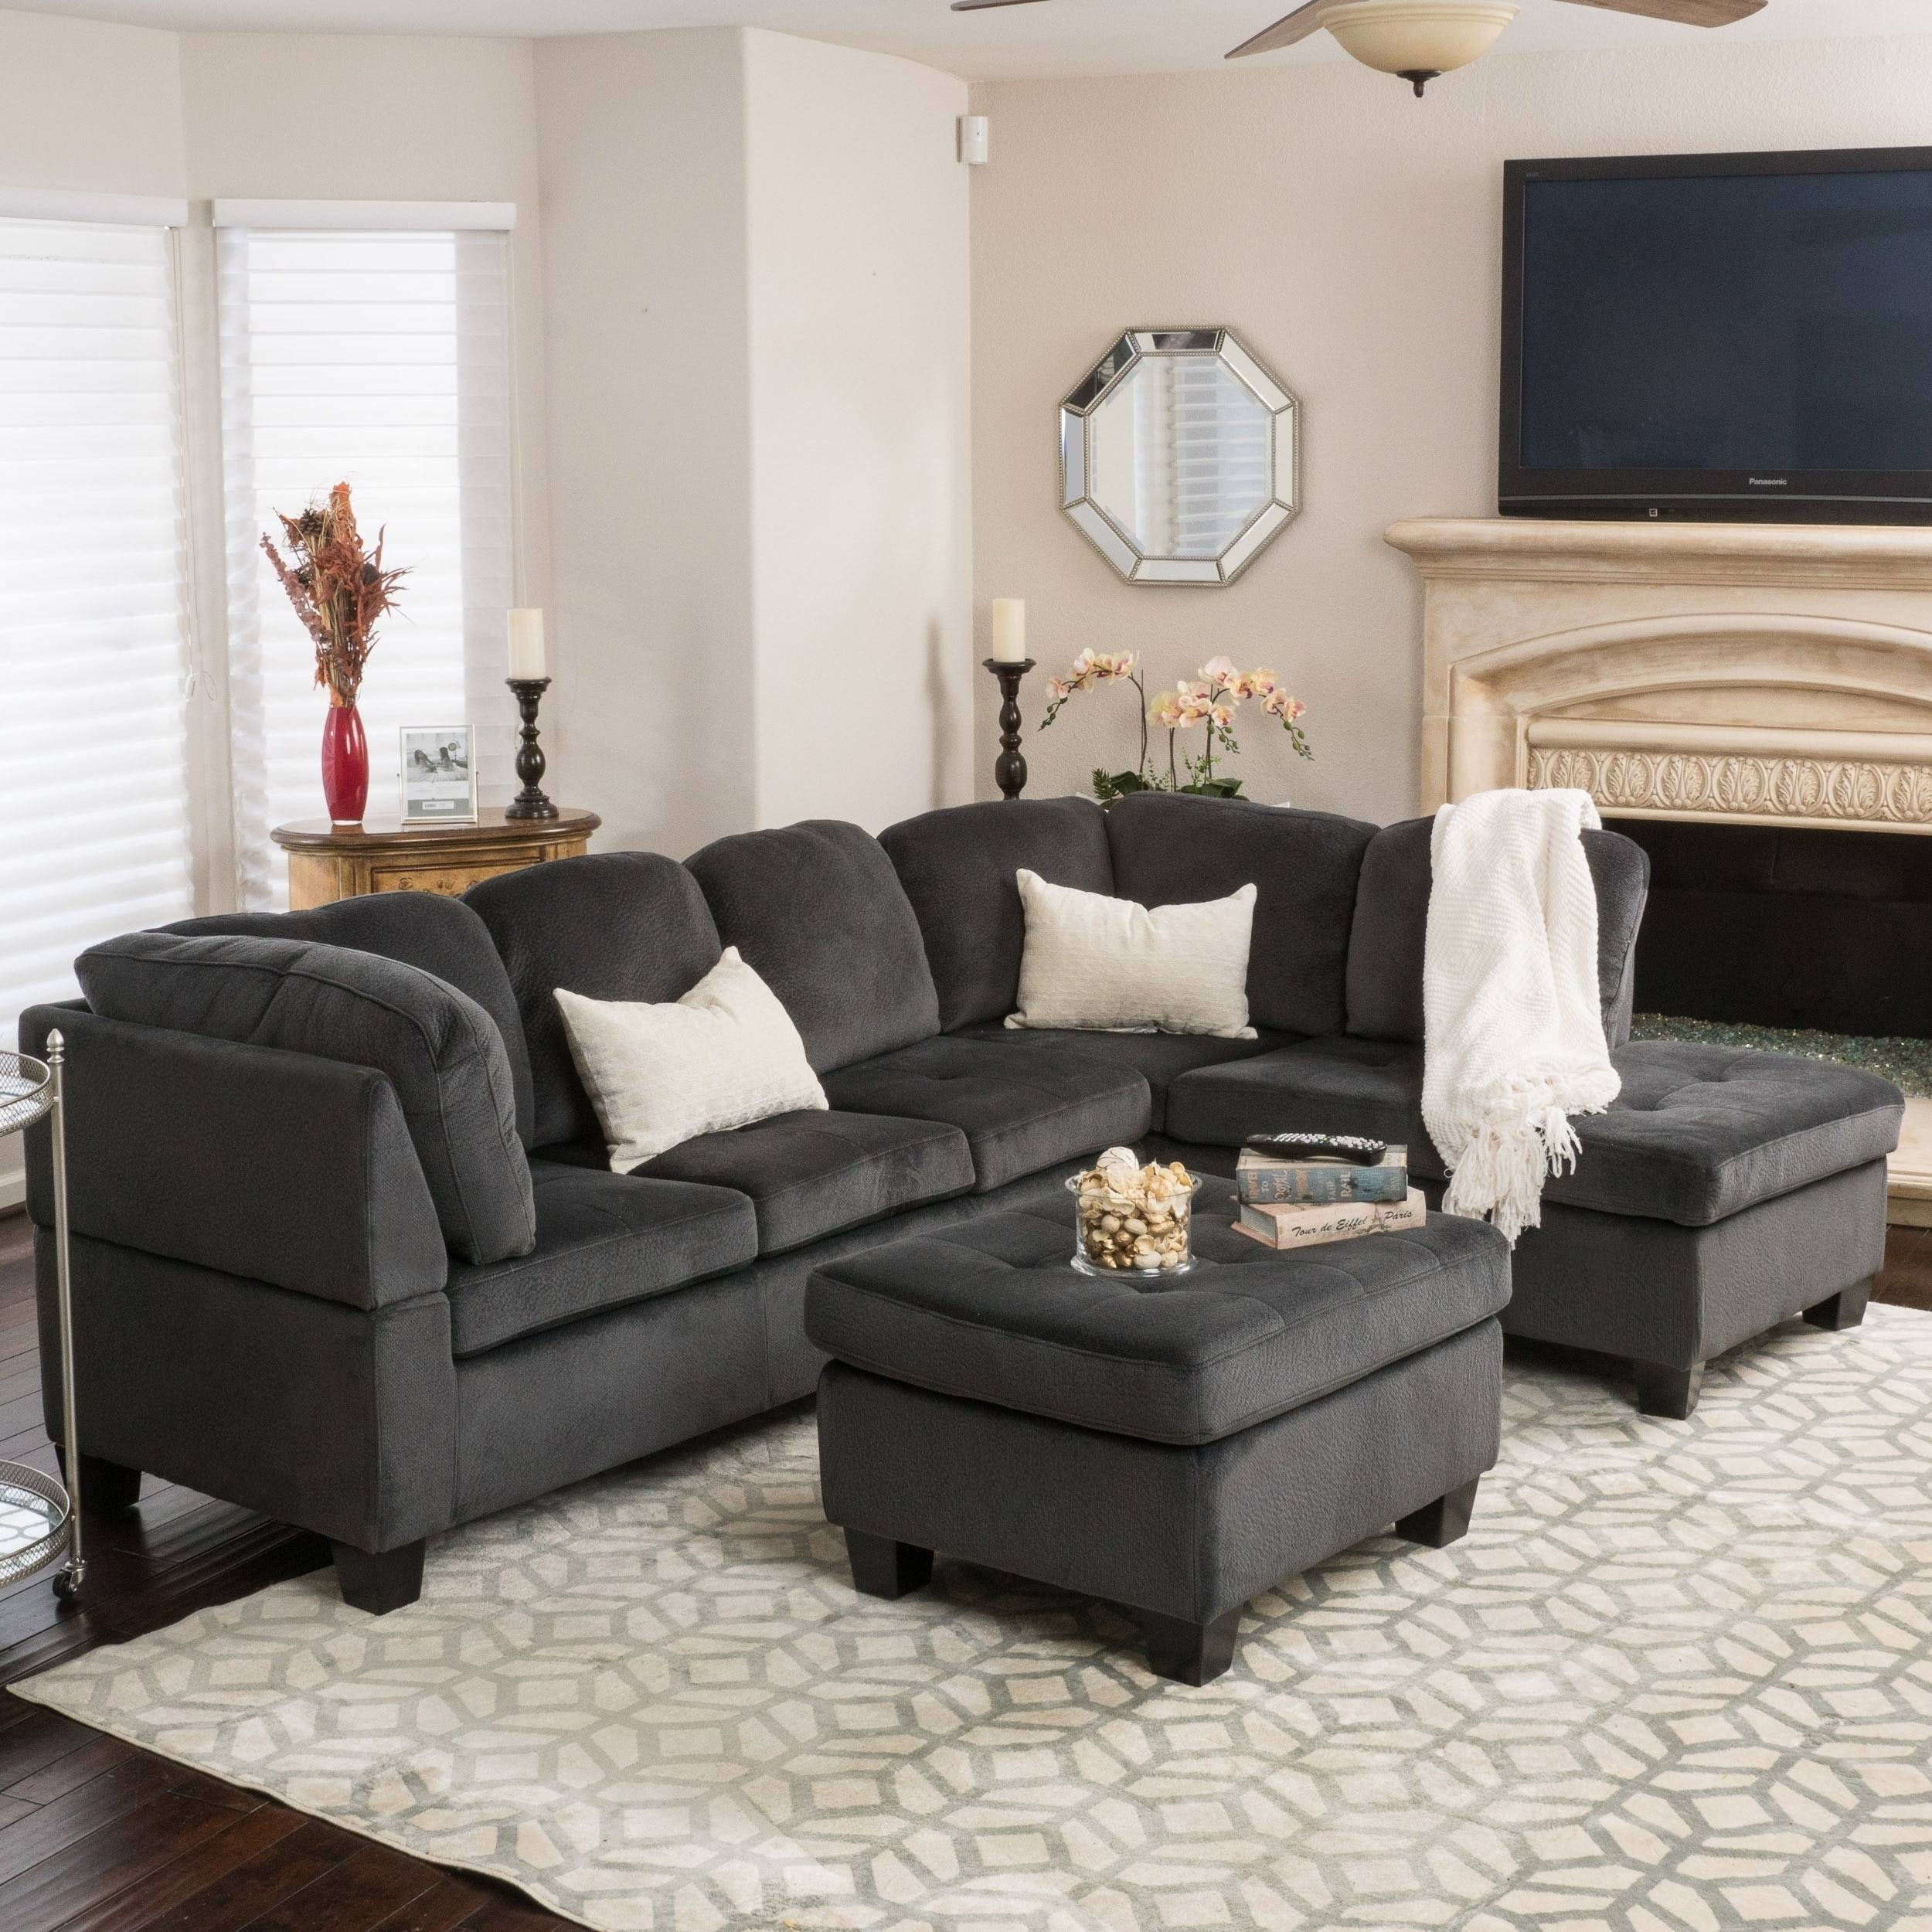 Christopher Knight Home Canterbury 3-Piece Fabric Sectional Sofa with regard to Canterbury Leather Sofas (Image 12 of 30)